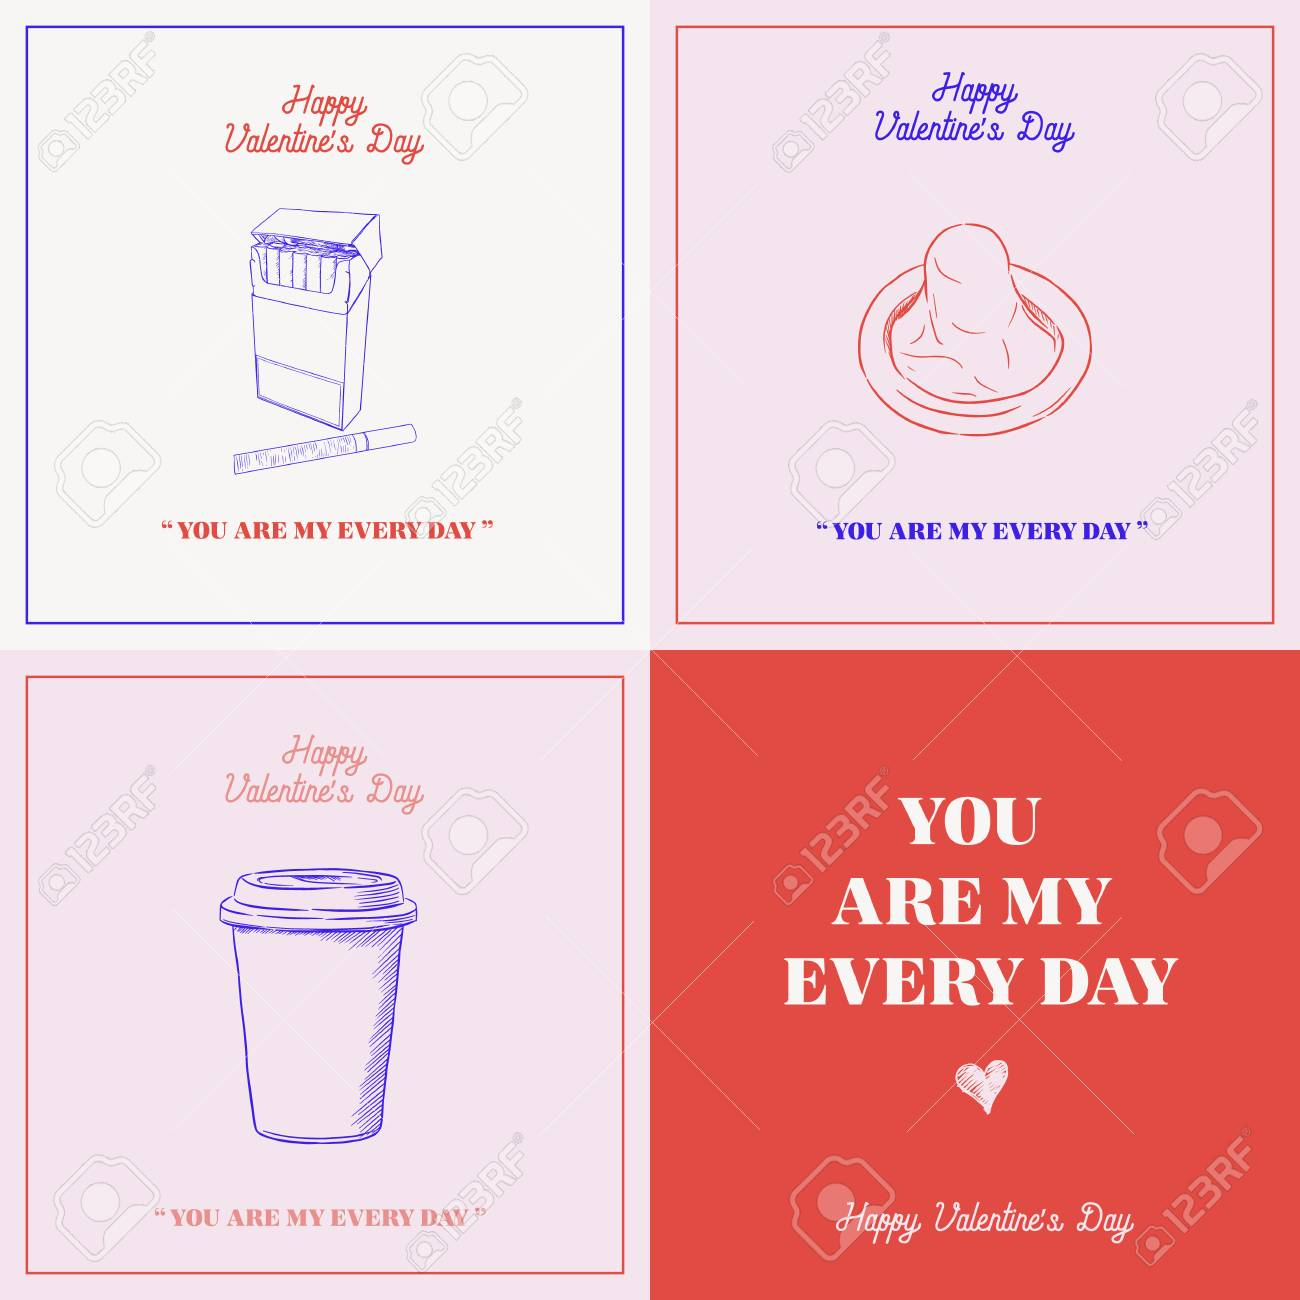 Valentines day gift card set valentines day gift card set 92819764 negle Images